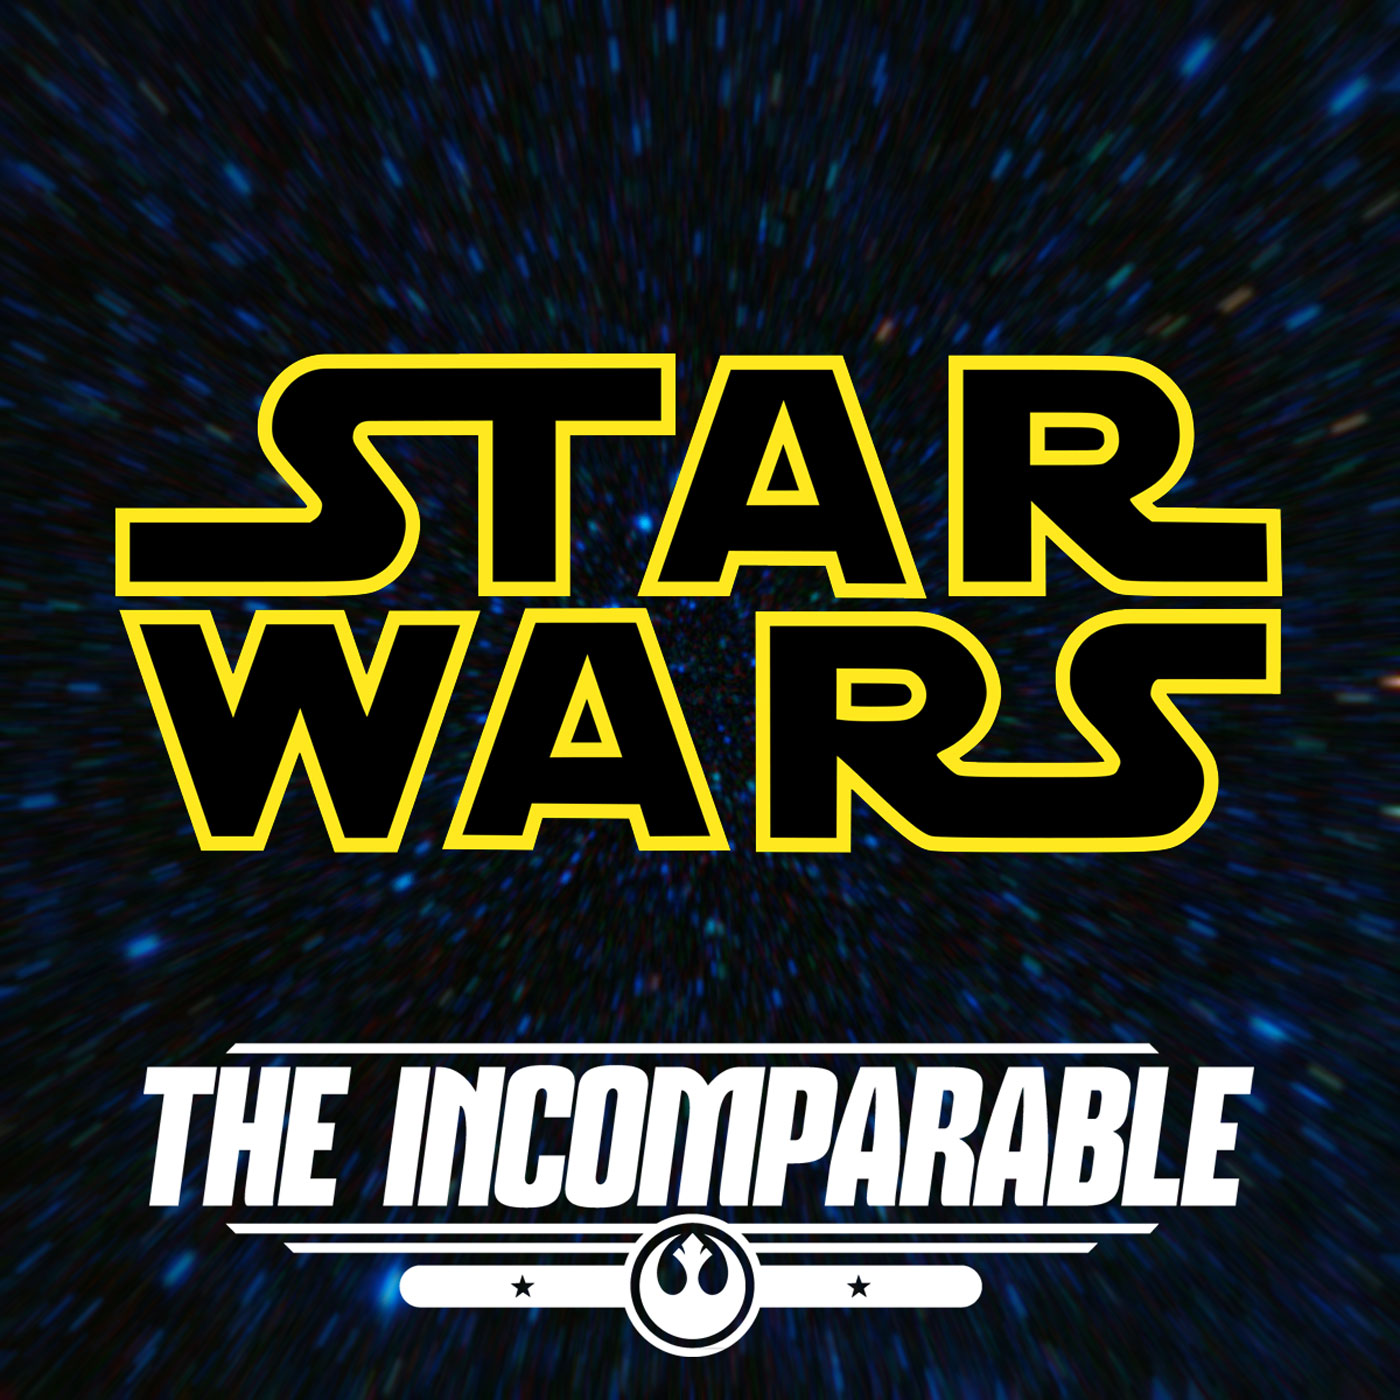 Logo Star Wars/The Incomparable, image The Incomparable